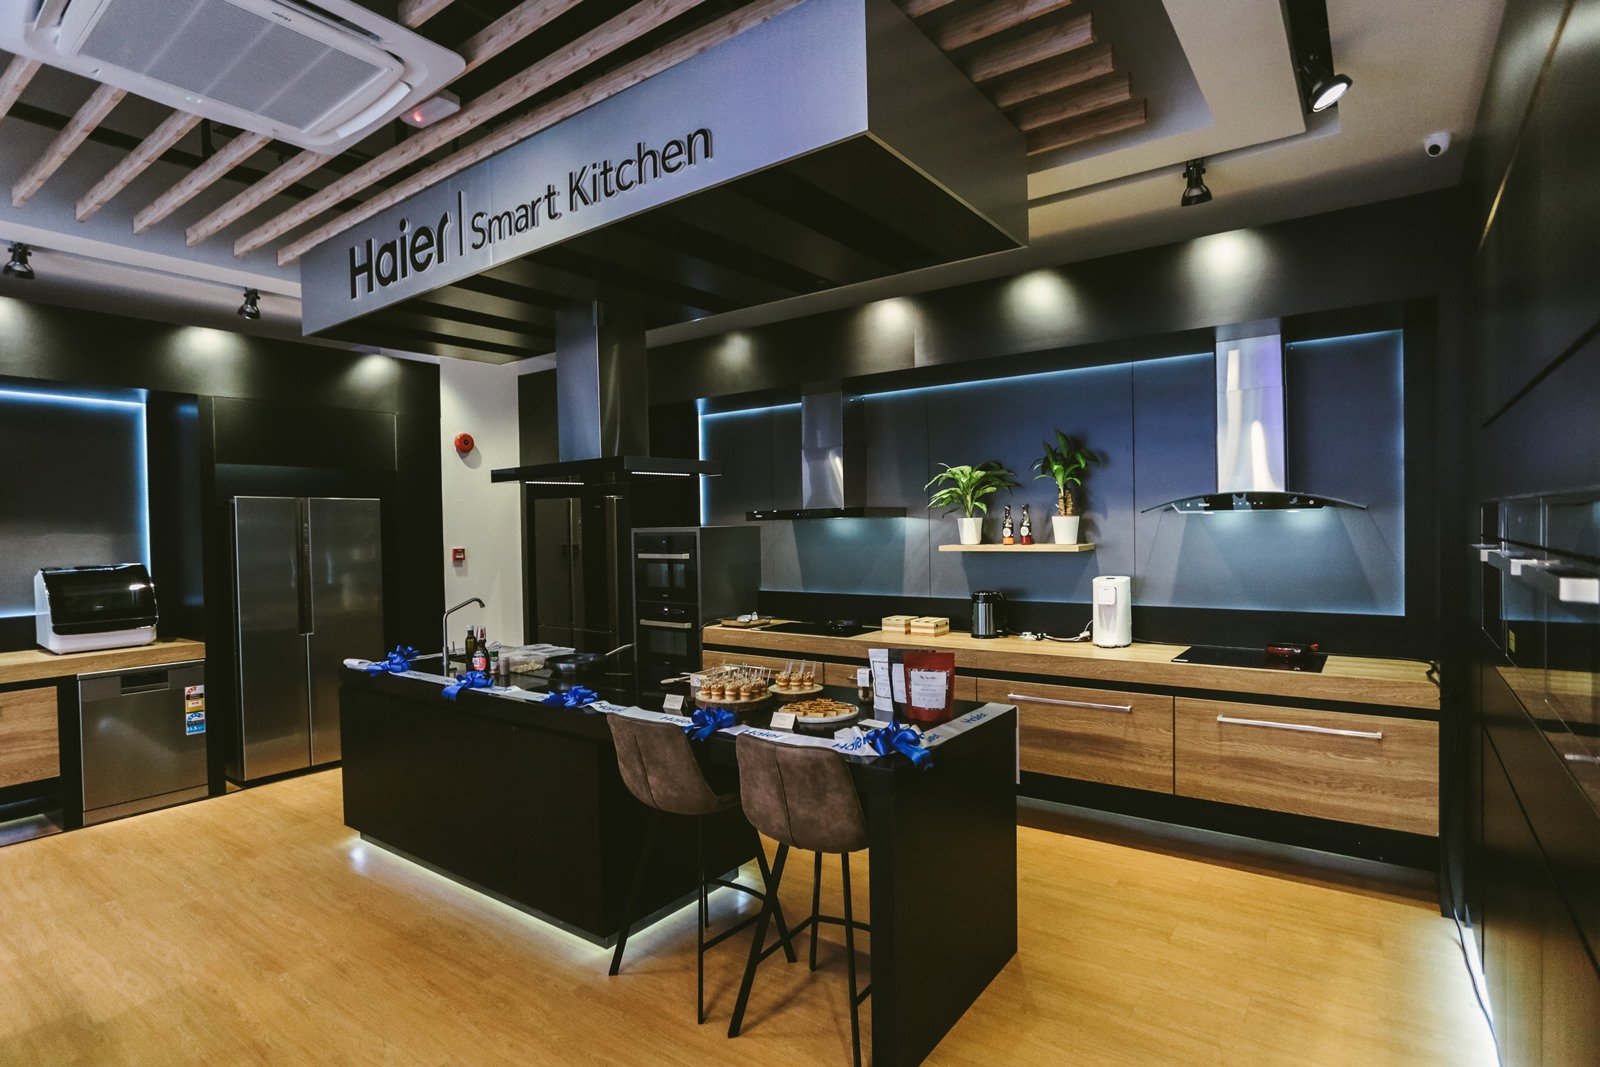 The new Smart Kitchen section at the Haier Experience Centre in Setiawalk, Puchong.